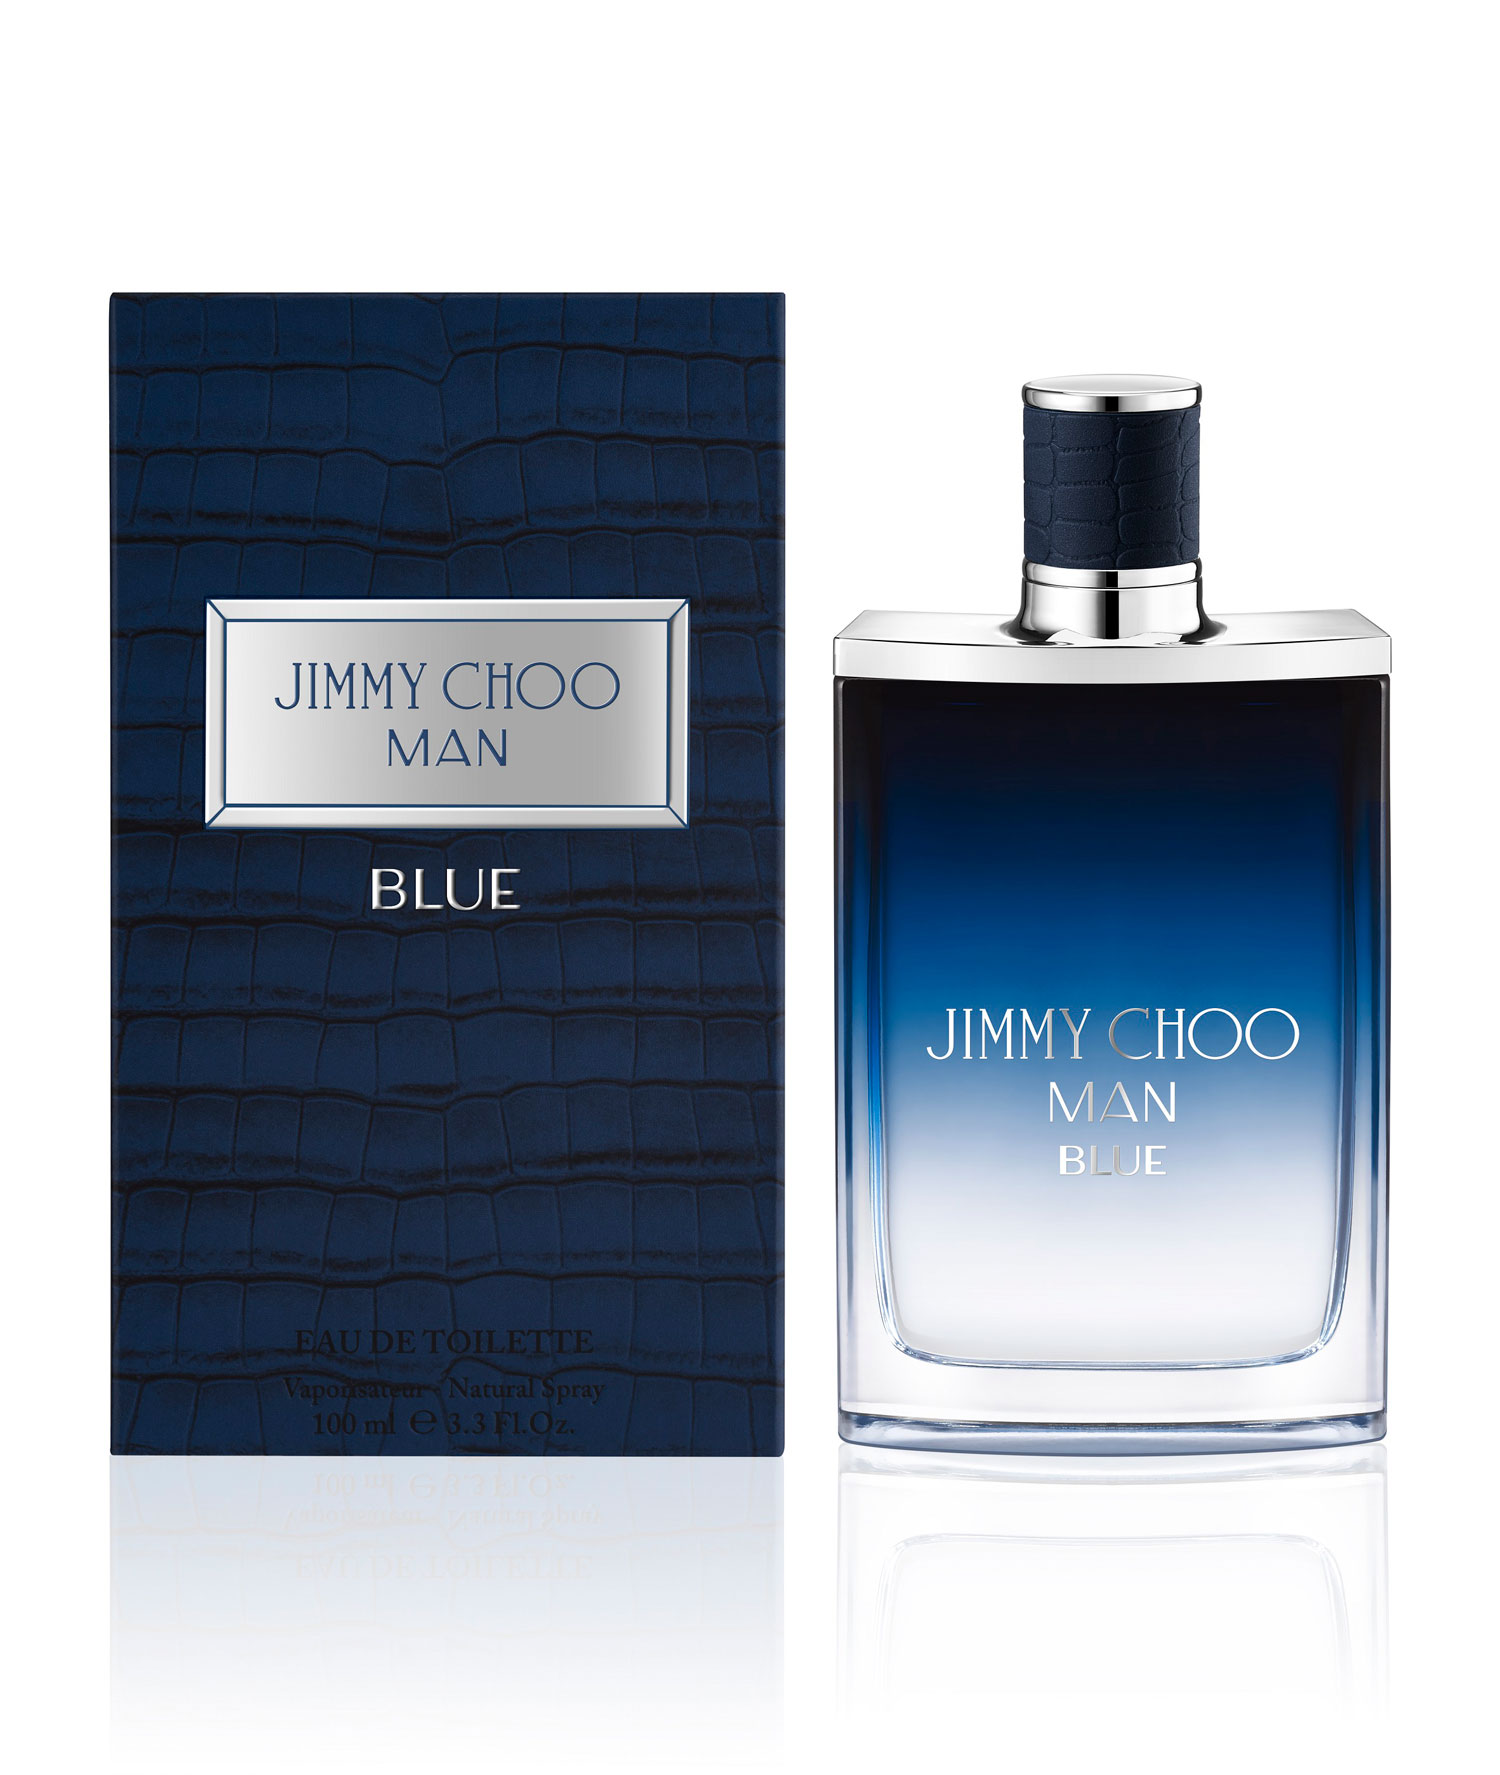 Jimmy Choo Man Blue Jimmy Choo Cologne A New Fragrance For Men 2018